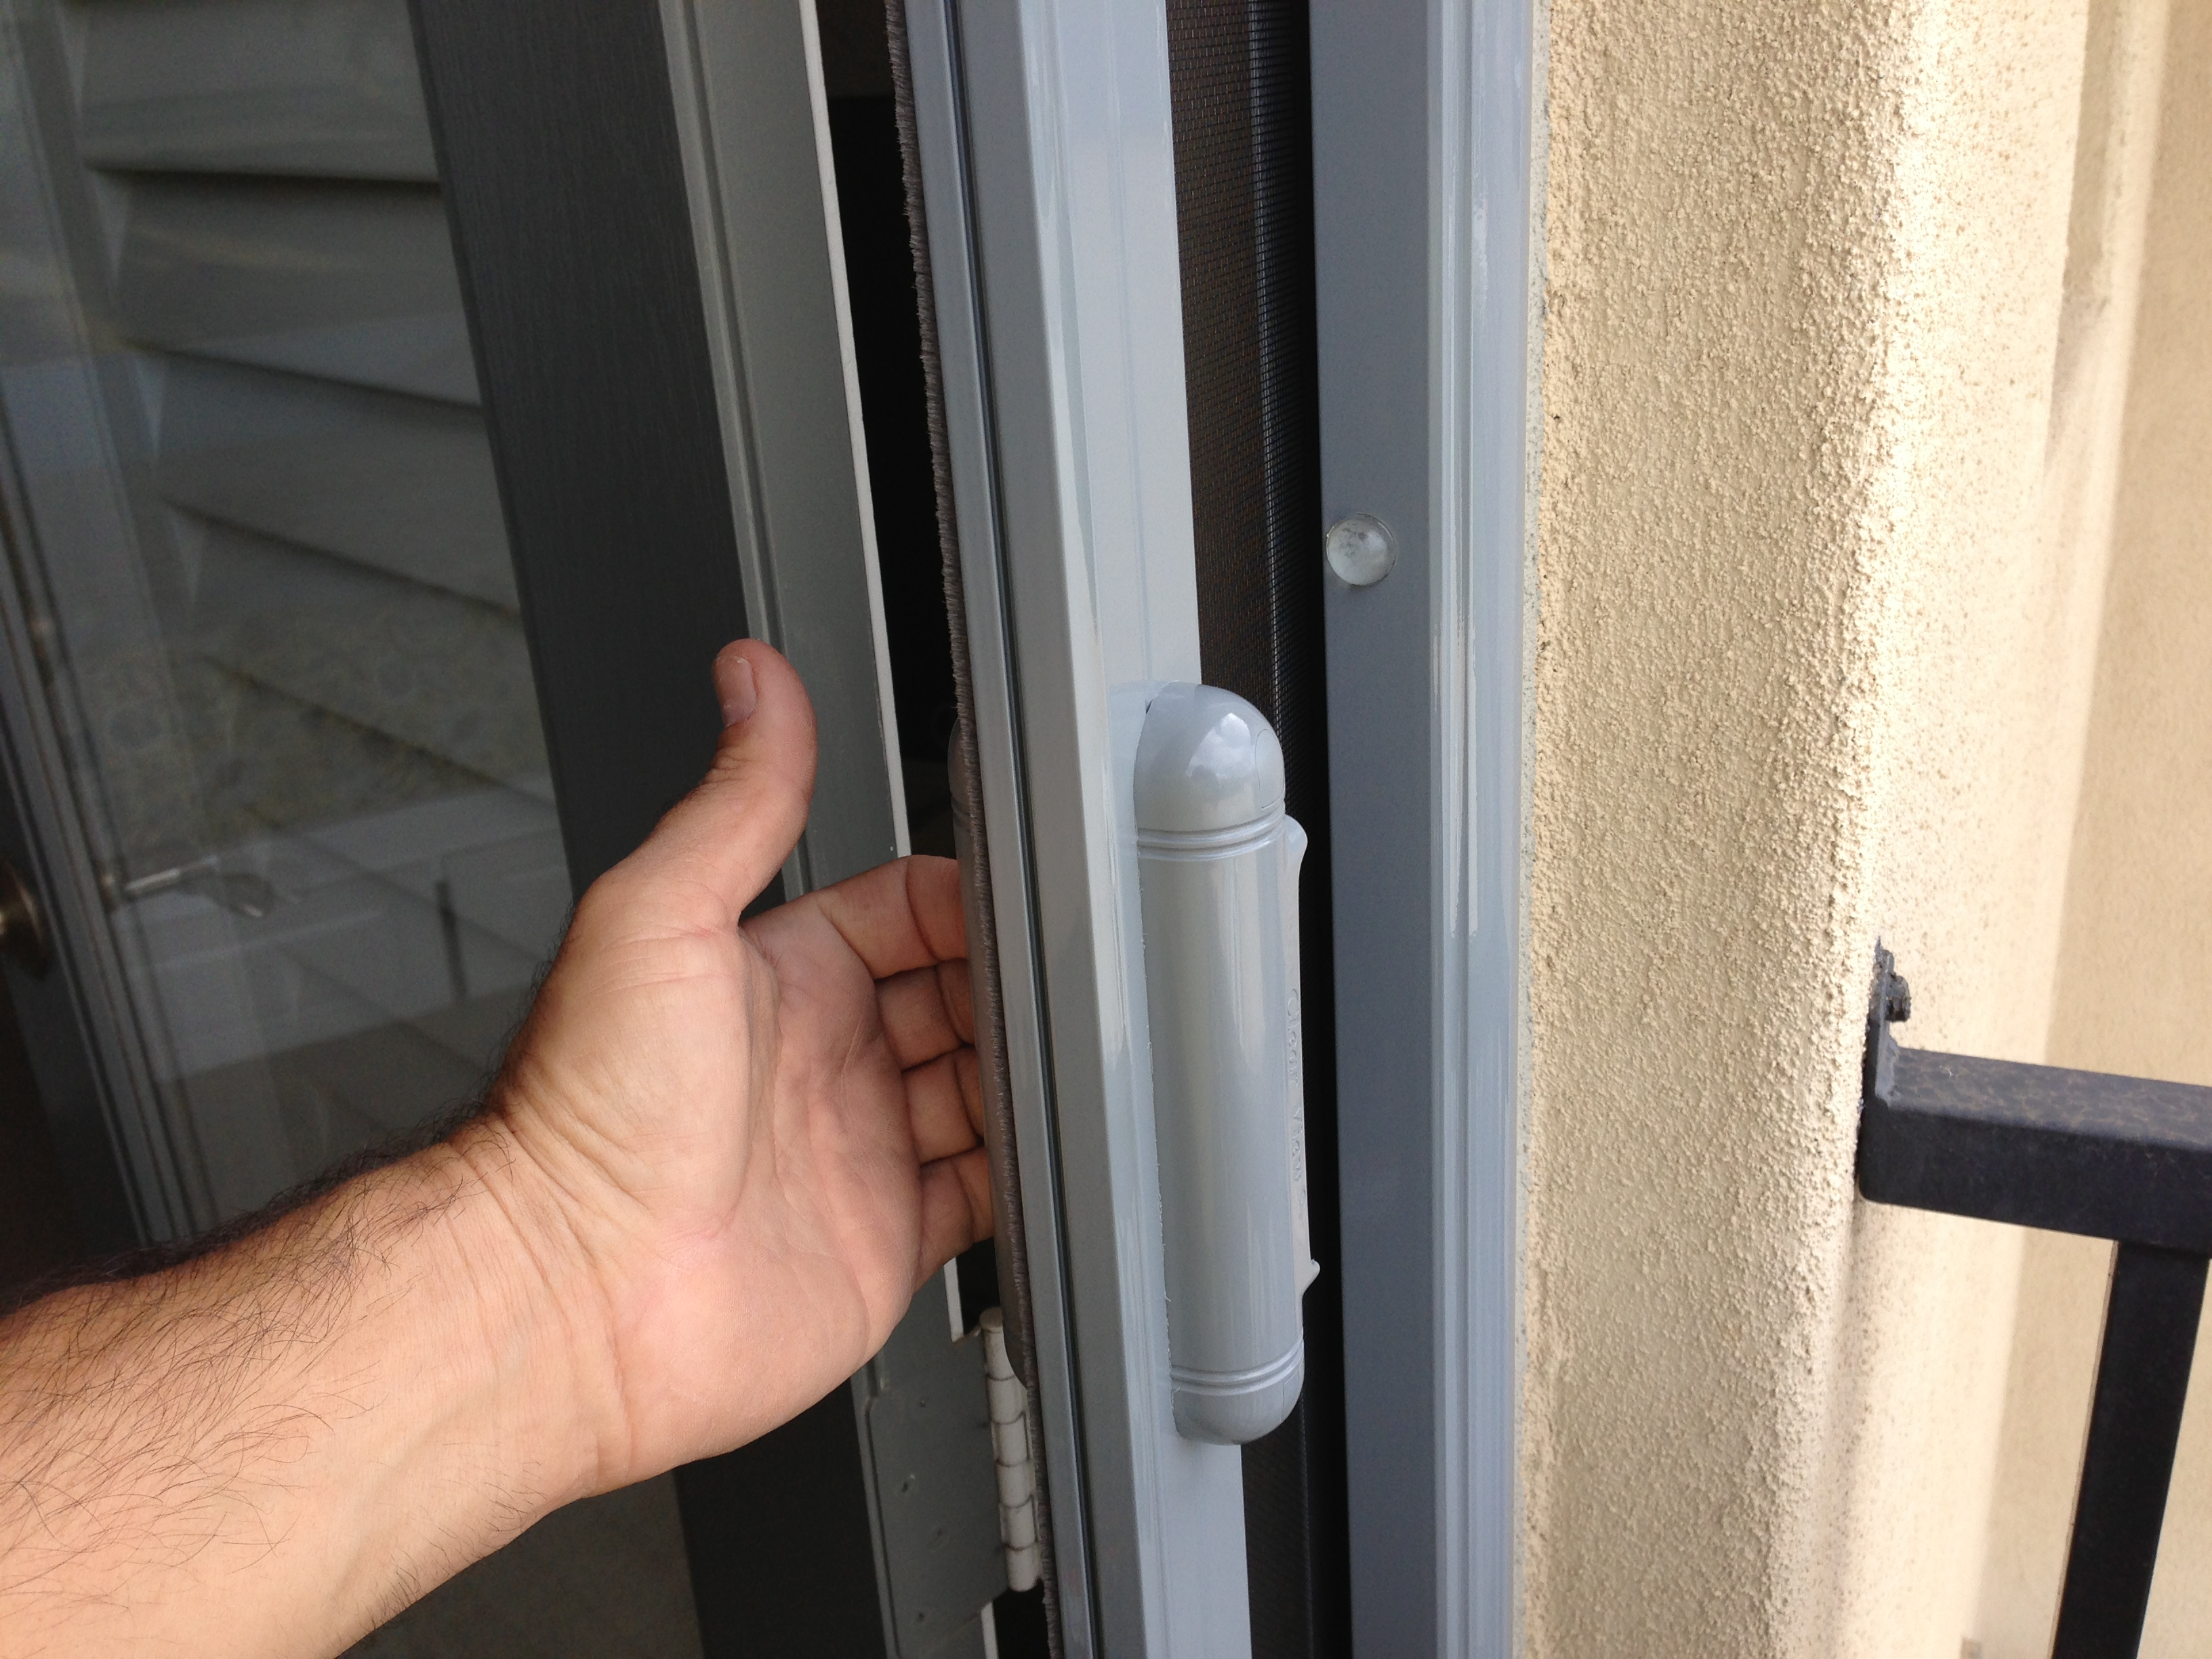 disappearing screen door handle in malibu job